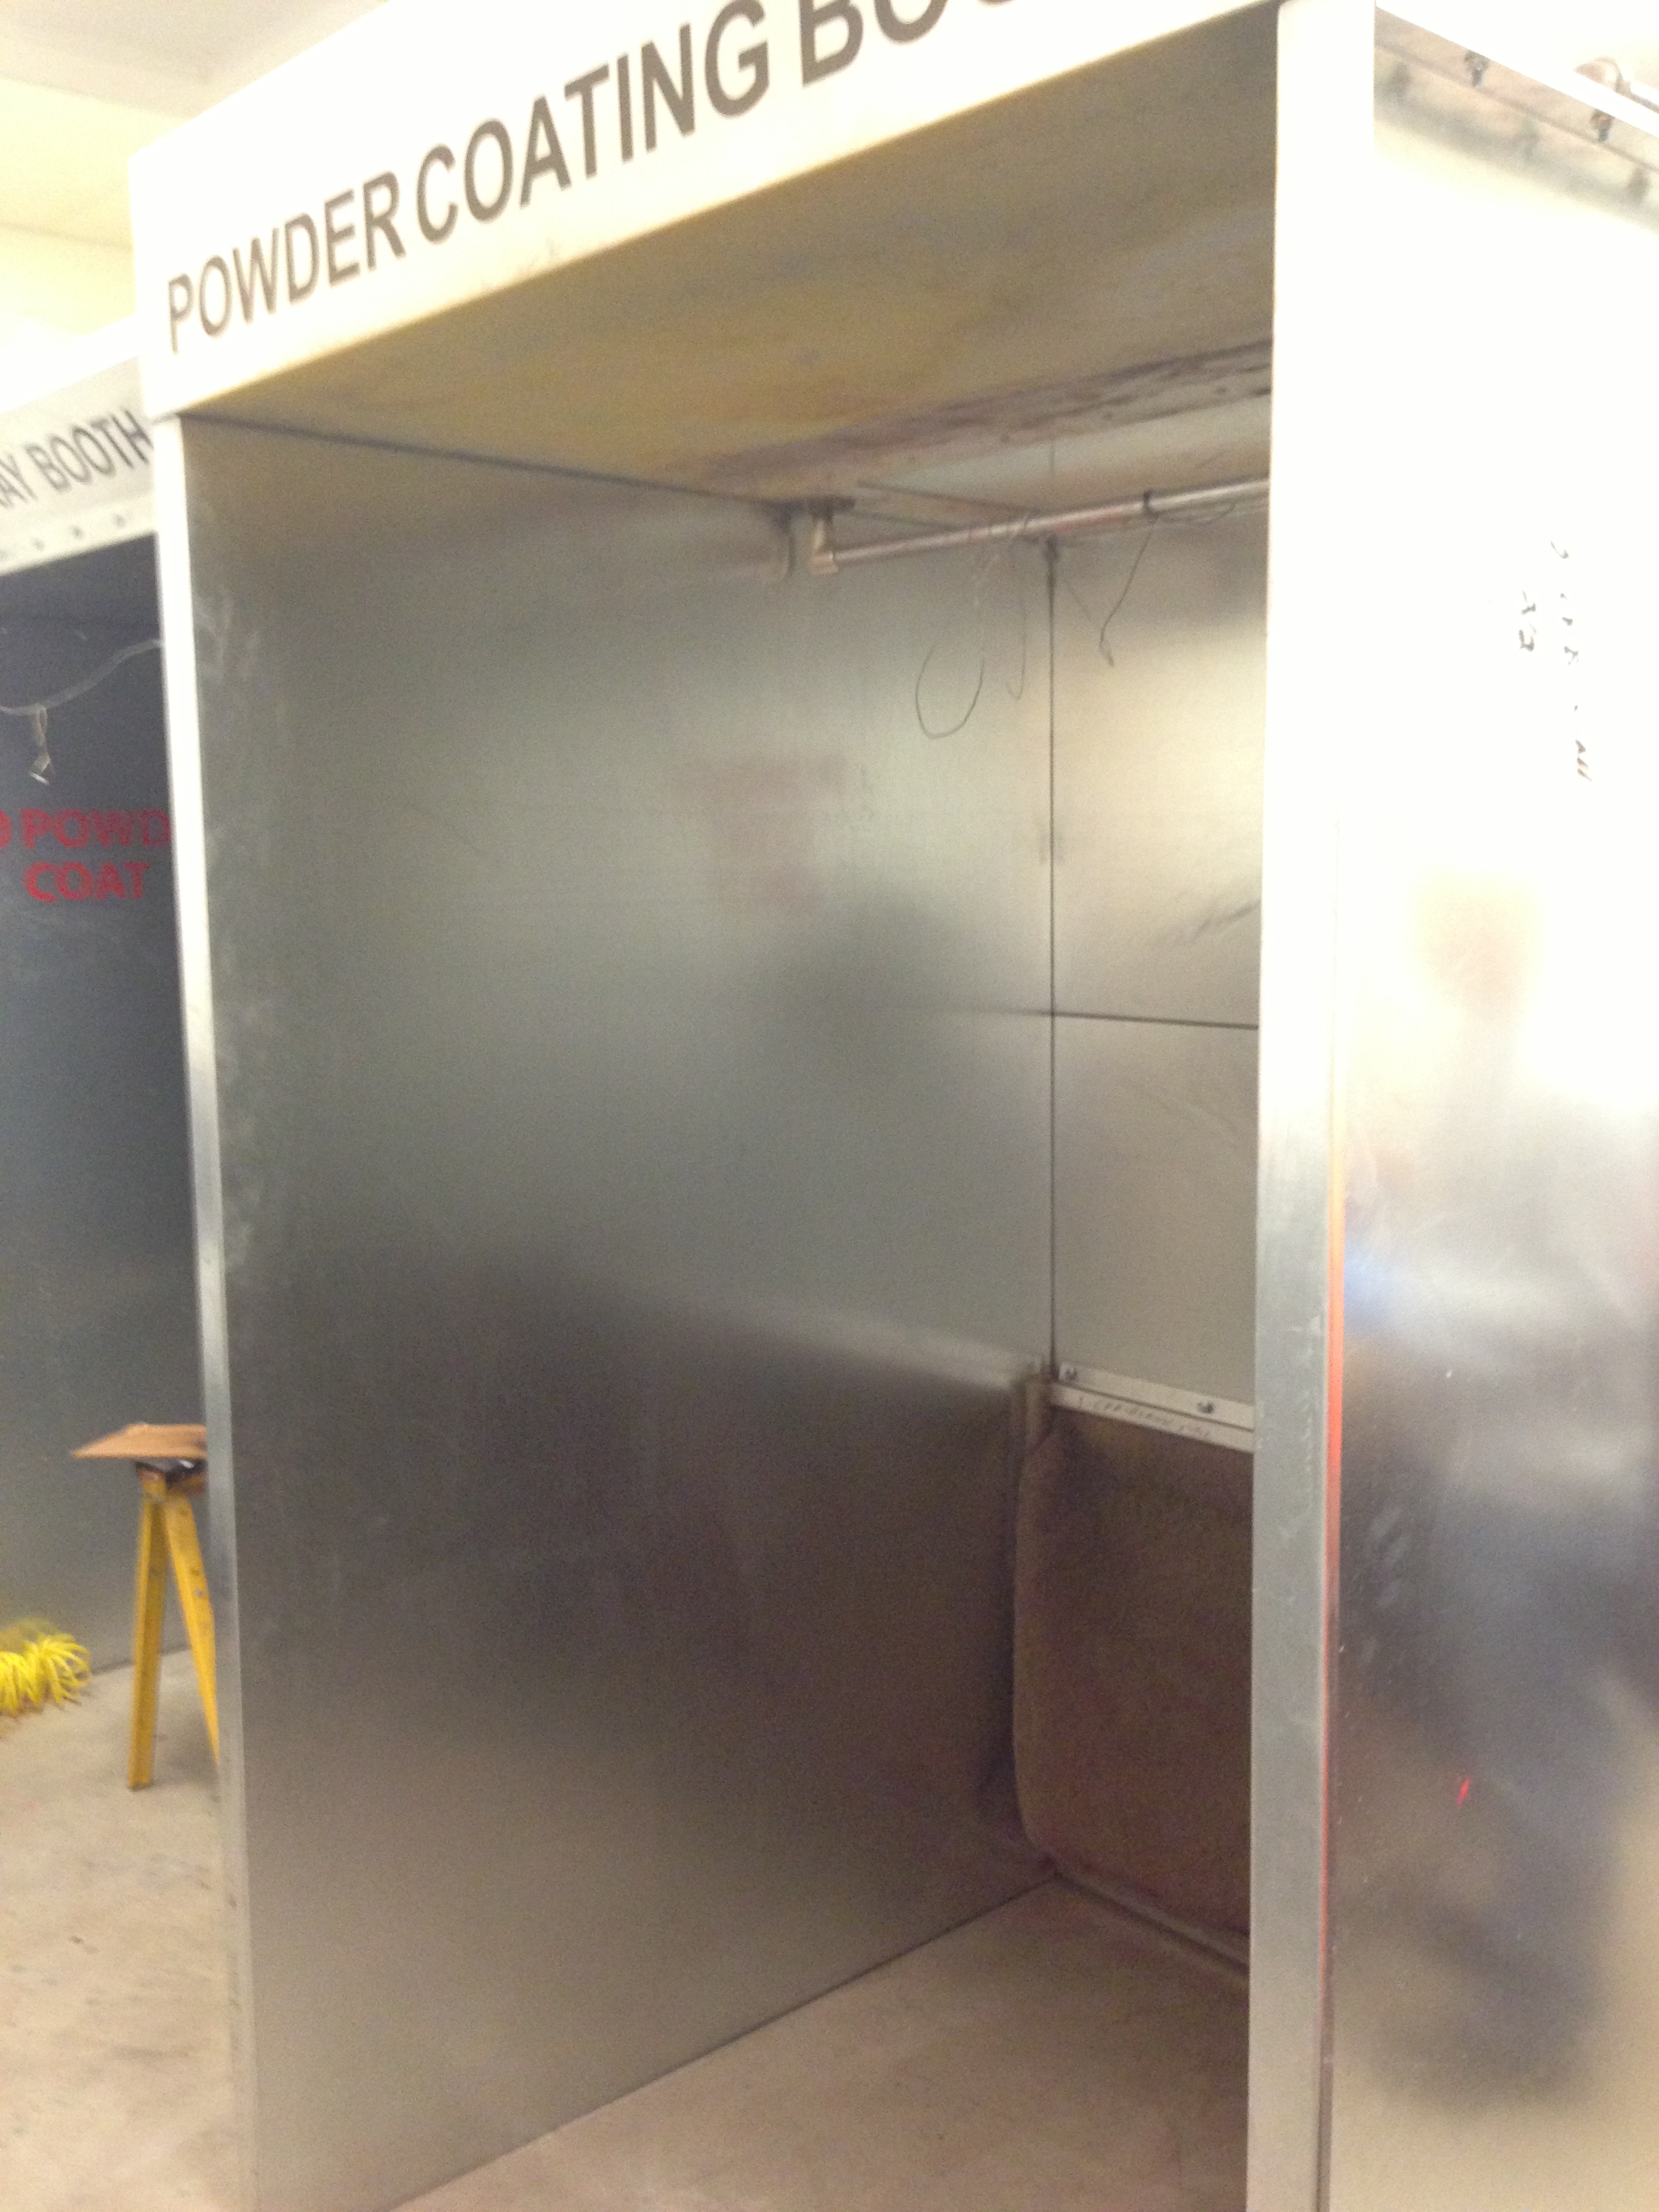 Picture of Powder Coating: the Powder Booth